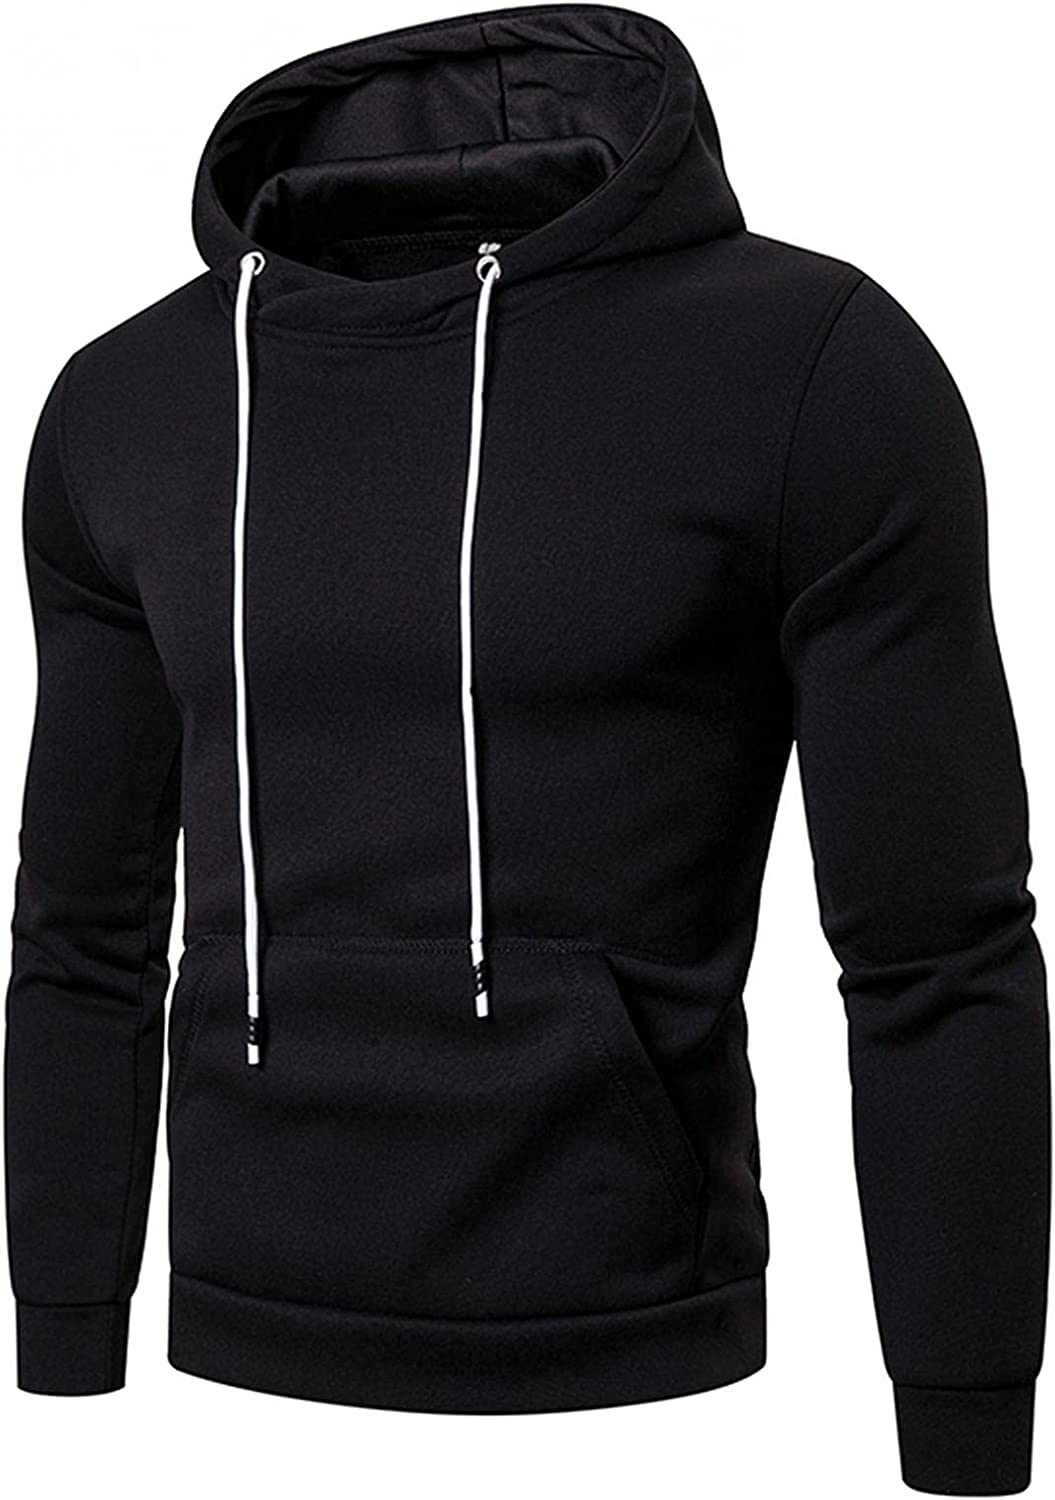 VEKDONE Mens Fashion Athletic Hoodies Bodybuilding Tapered Slim Fit Sport Sweatshirt Casual Solid Color Fleece Pullover Tops